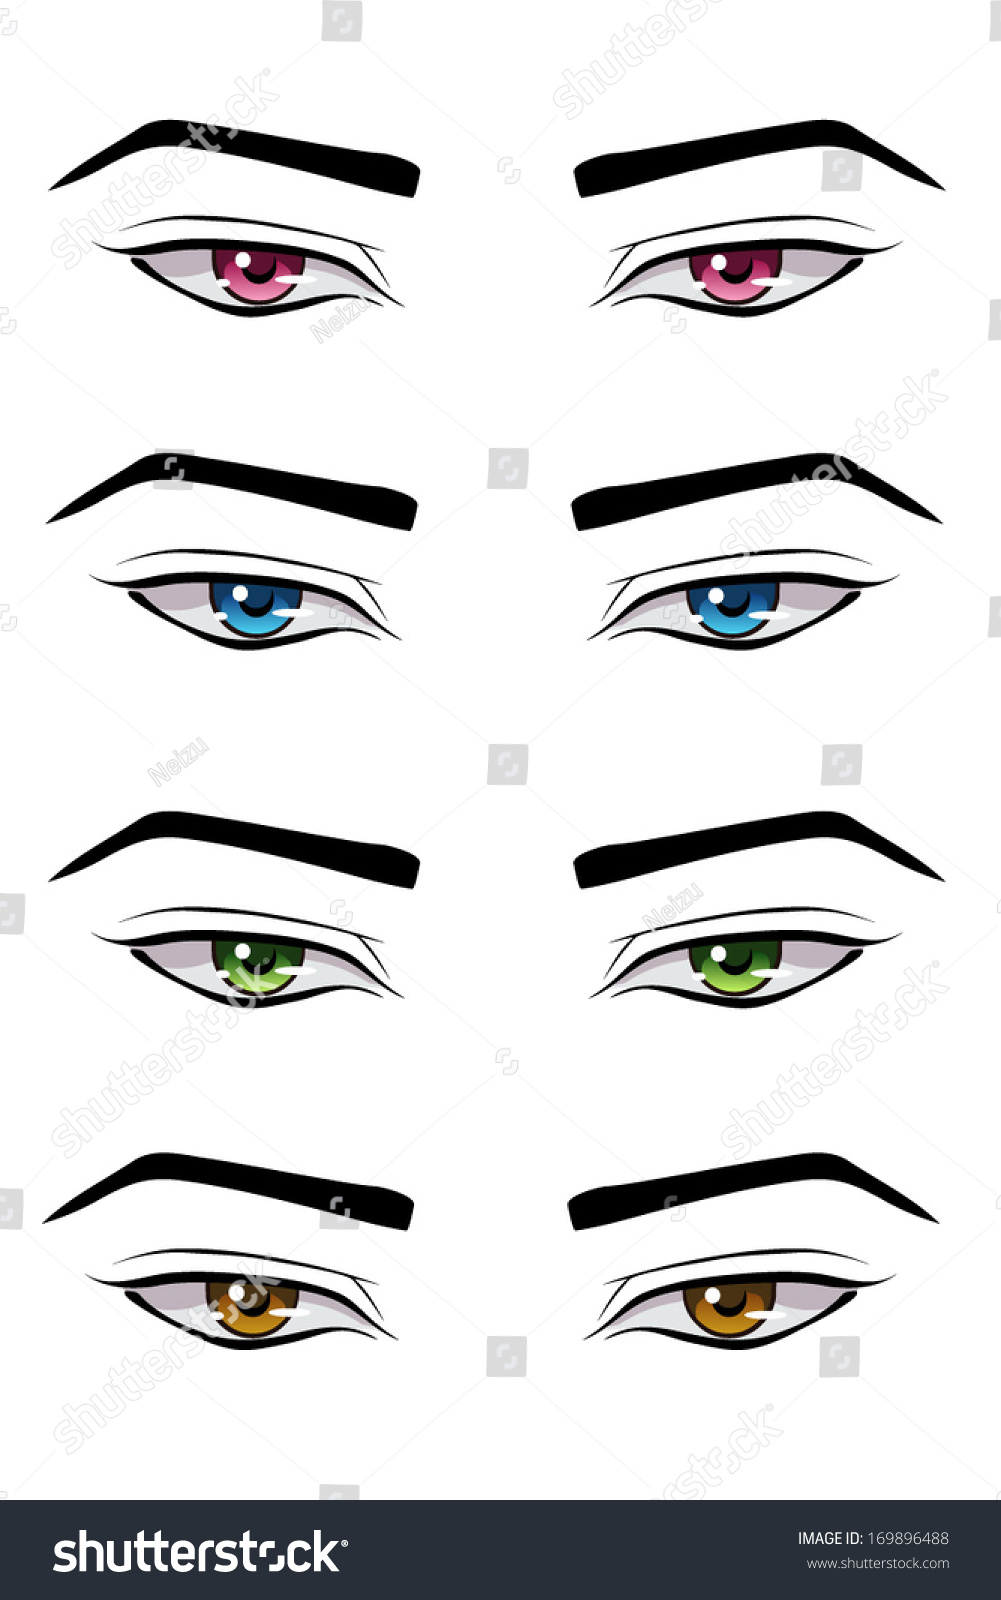 Set of male anime style eyes of different colors isolated on white